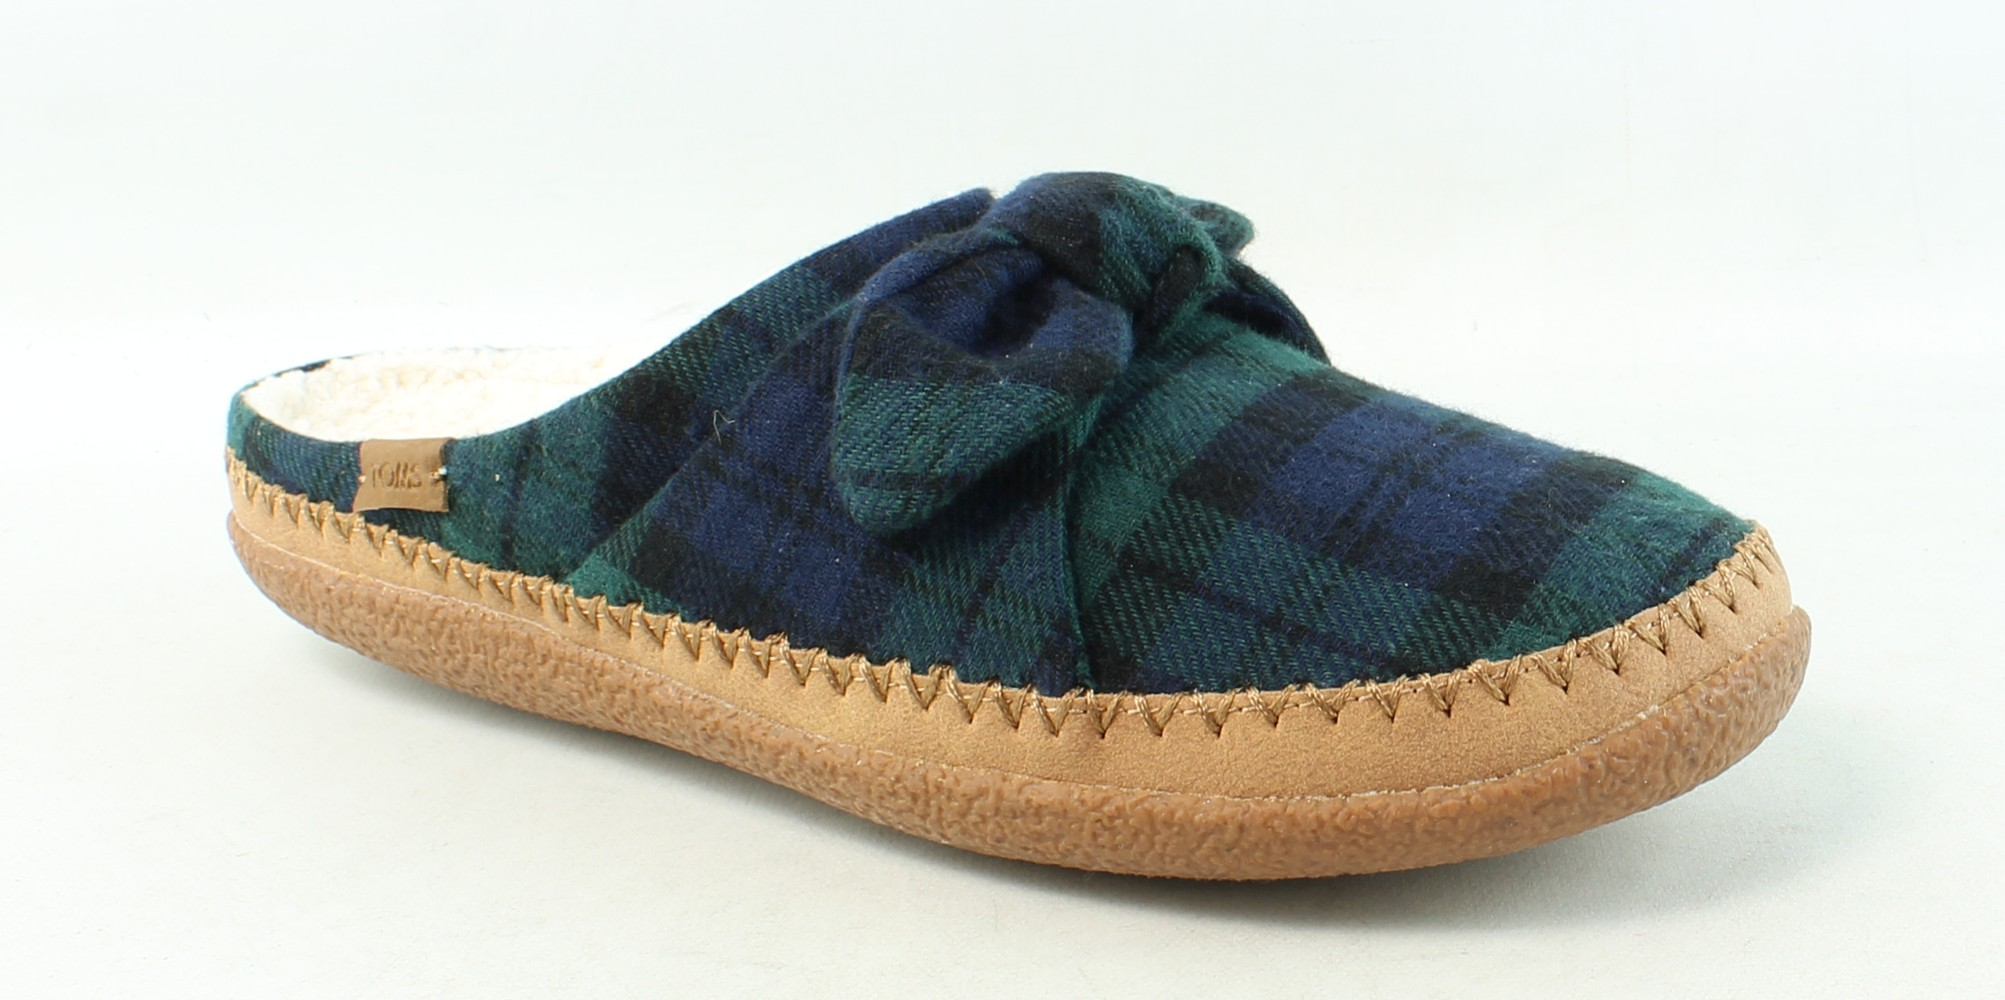 197a839ecc3 TOMS Womens Ivy Green Mule Slippers Size 9 (242338)